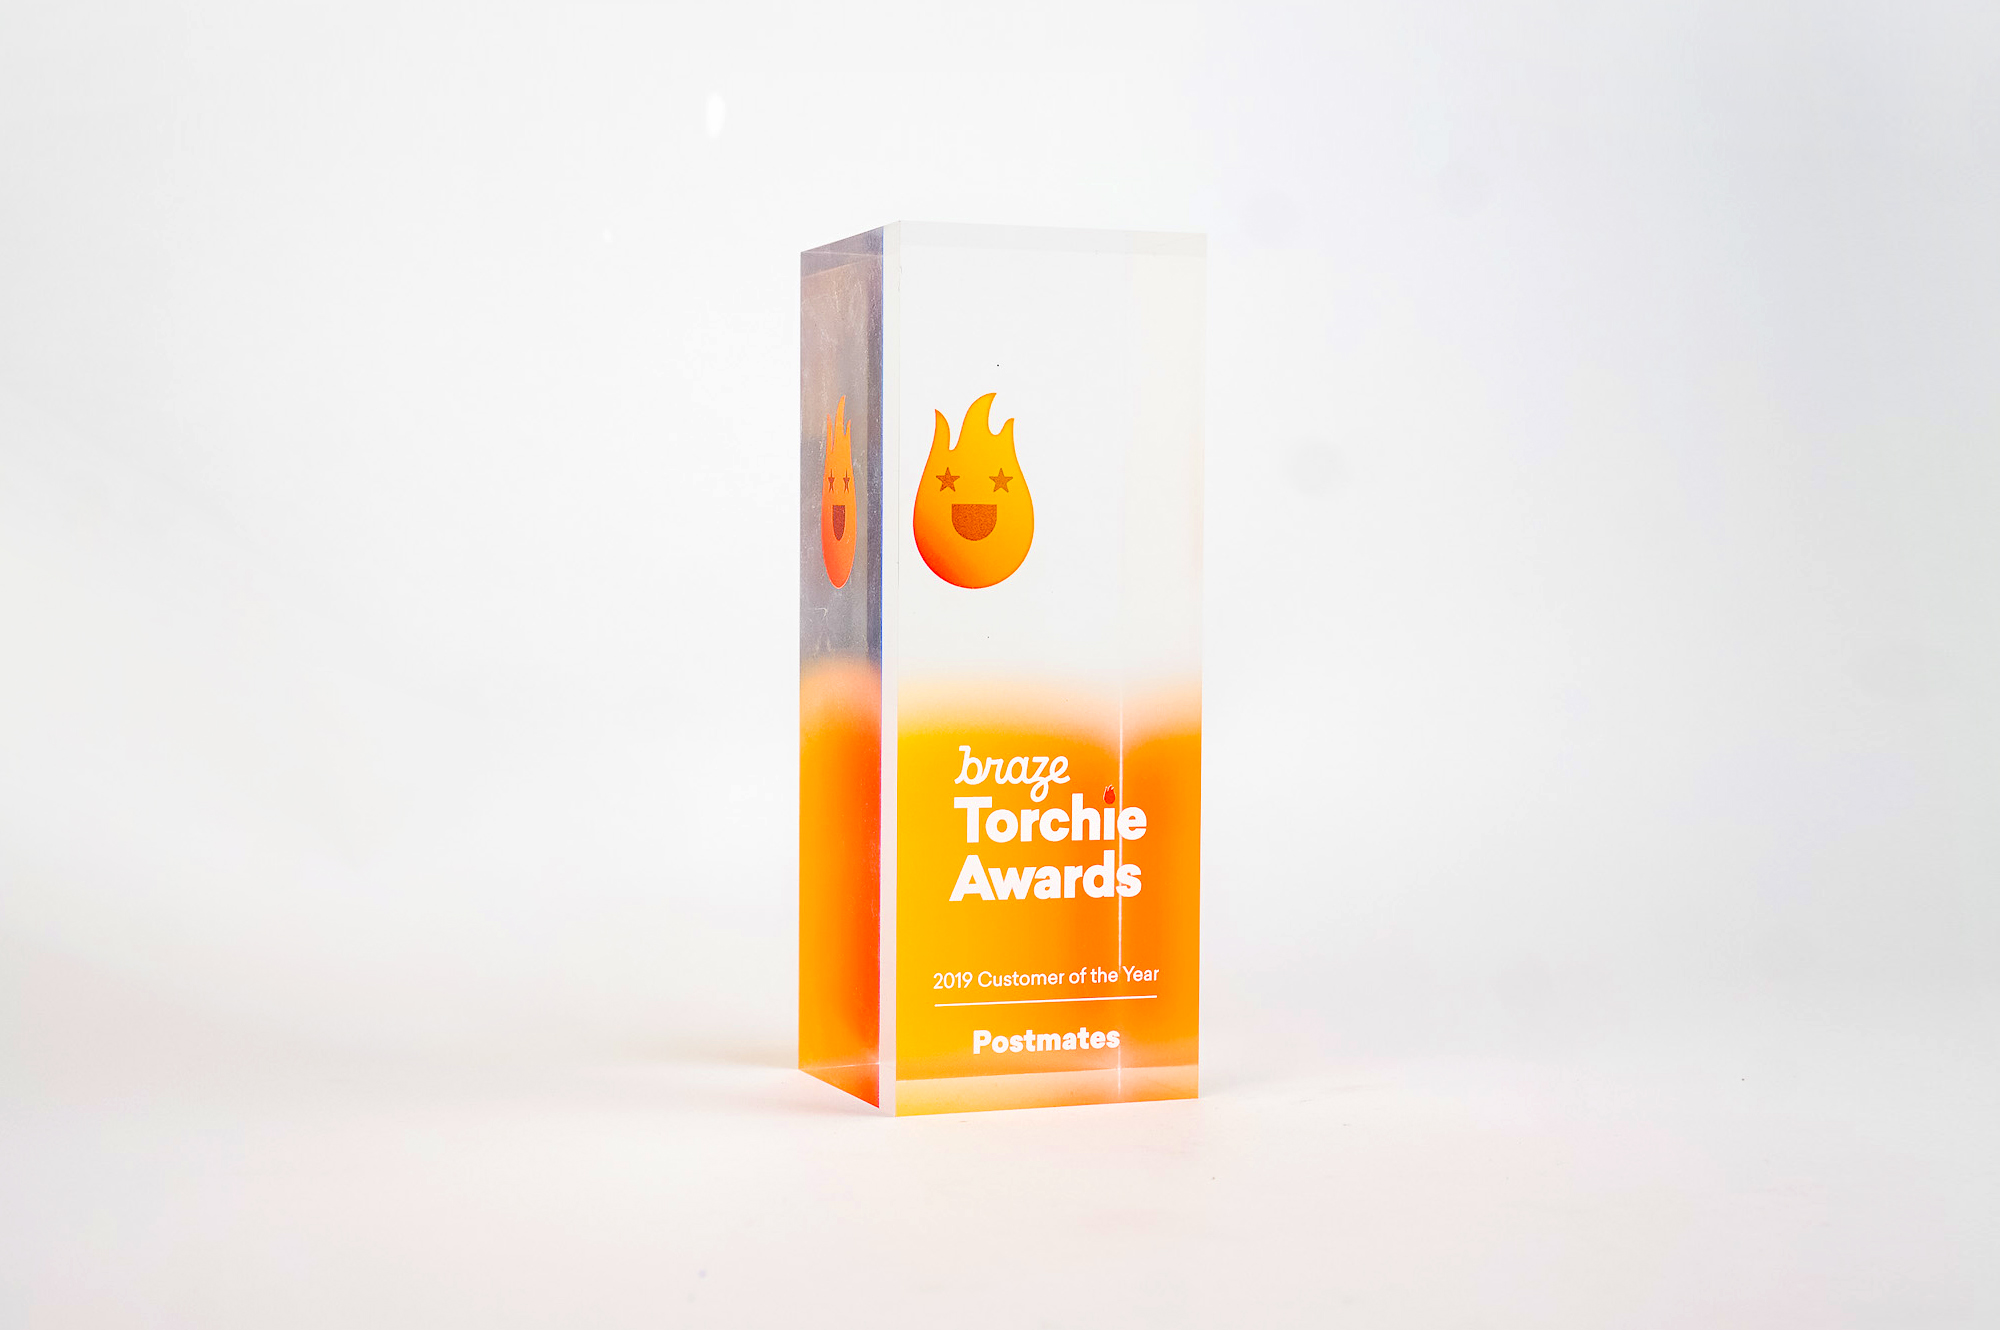 Modern, multi-side printed acrylic award for Braze, an American cloud-based software company based in New York City.